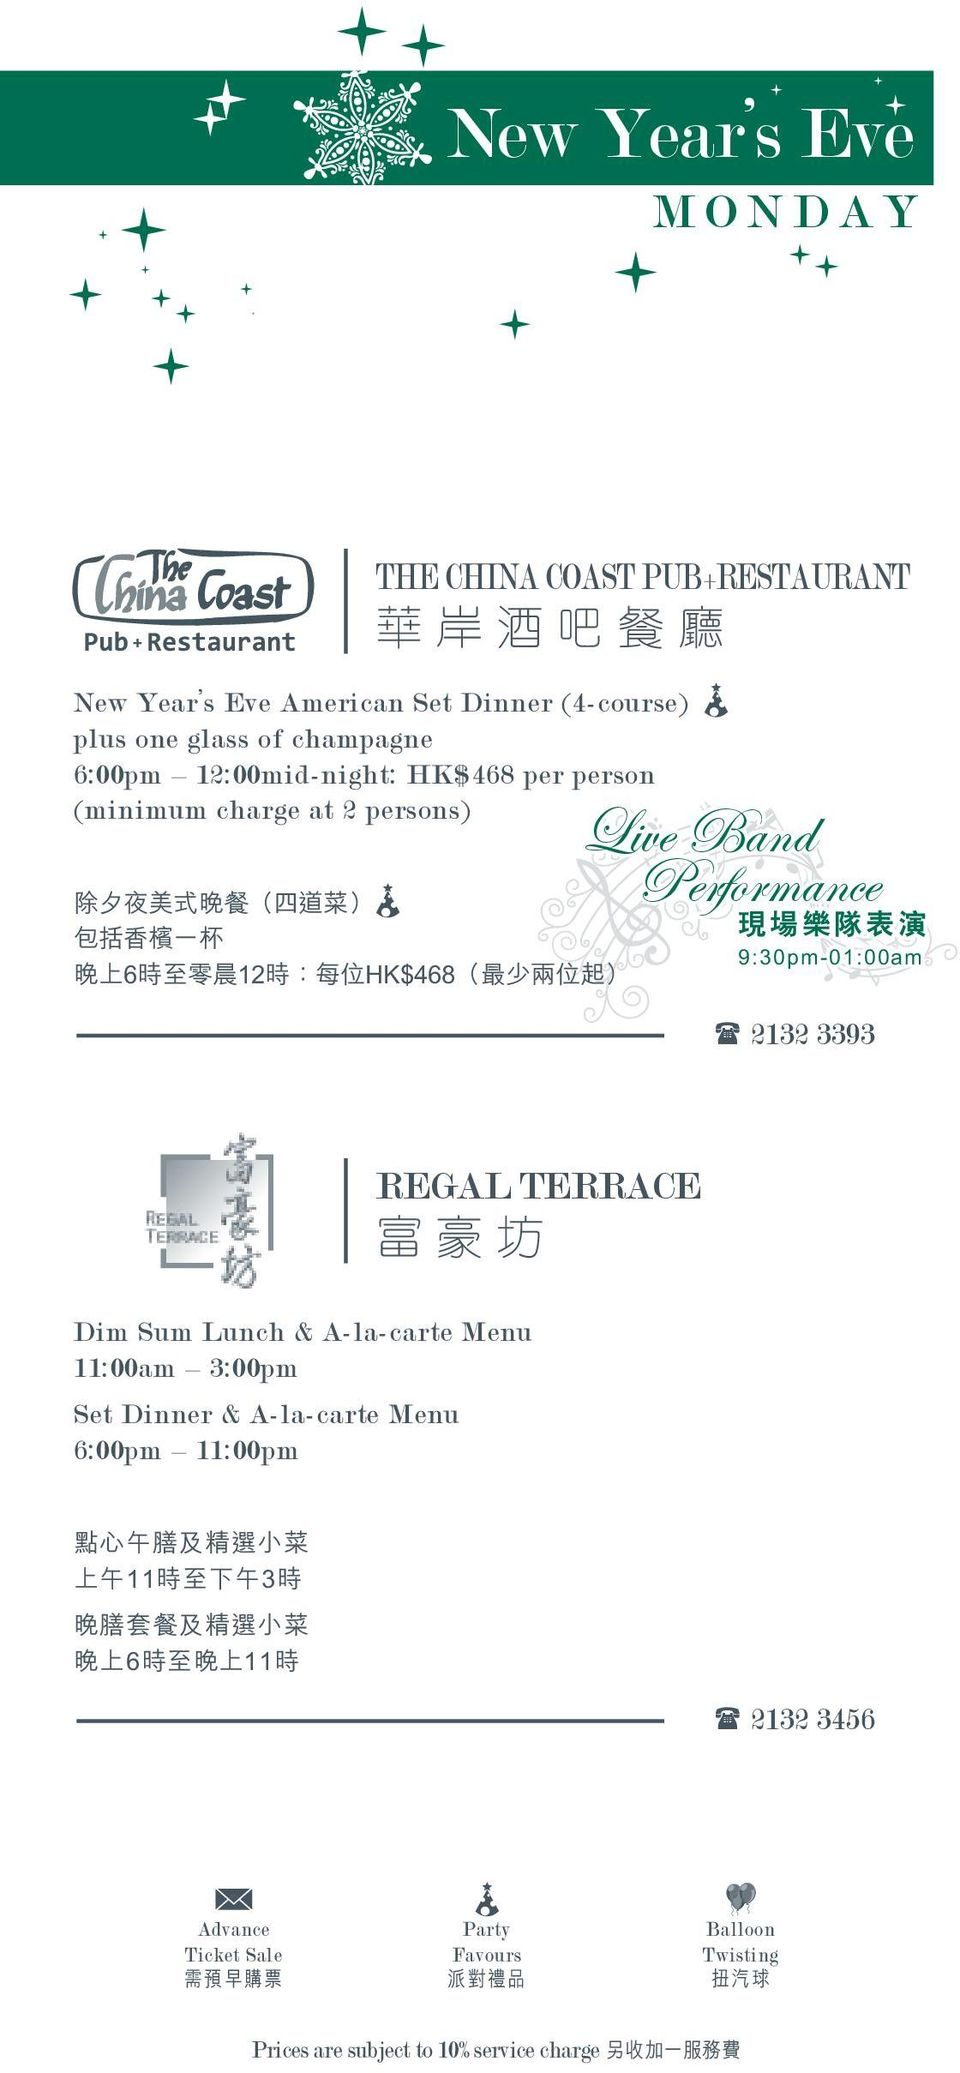 Performance ( 2132 3393 REGAL TERRACE Dim Sum Lunch & A-la-carte Menu 11:00am 3:00pm Set Dinner & A-la-carte